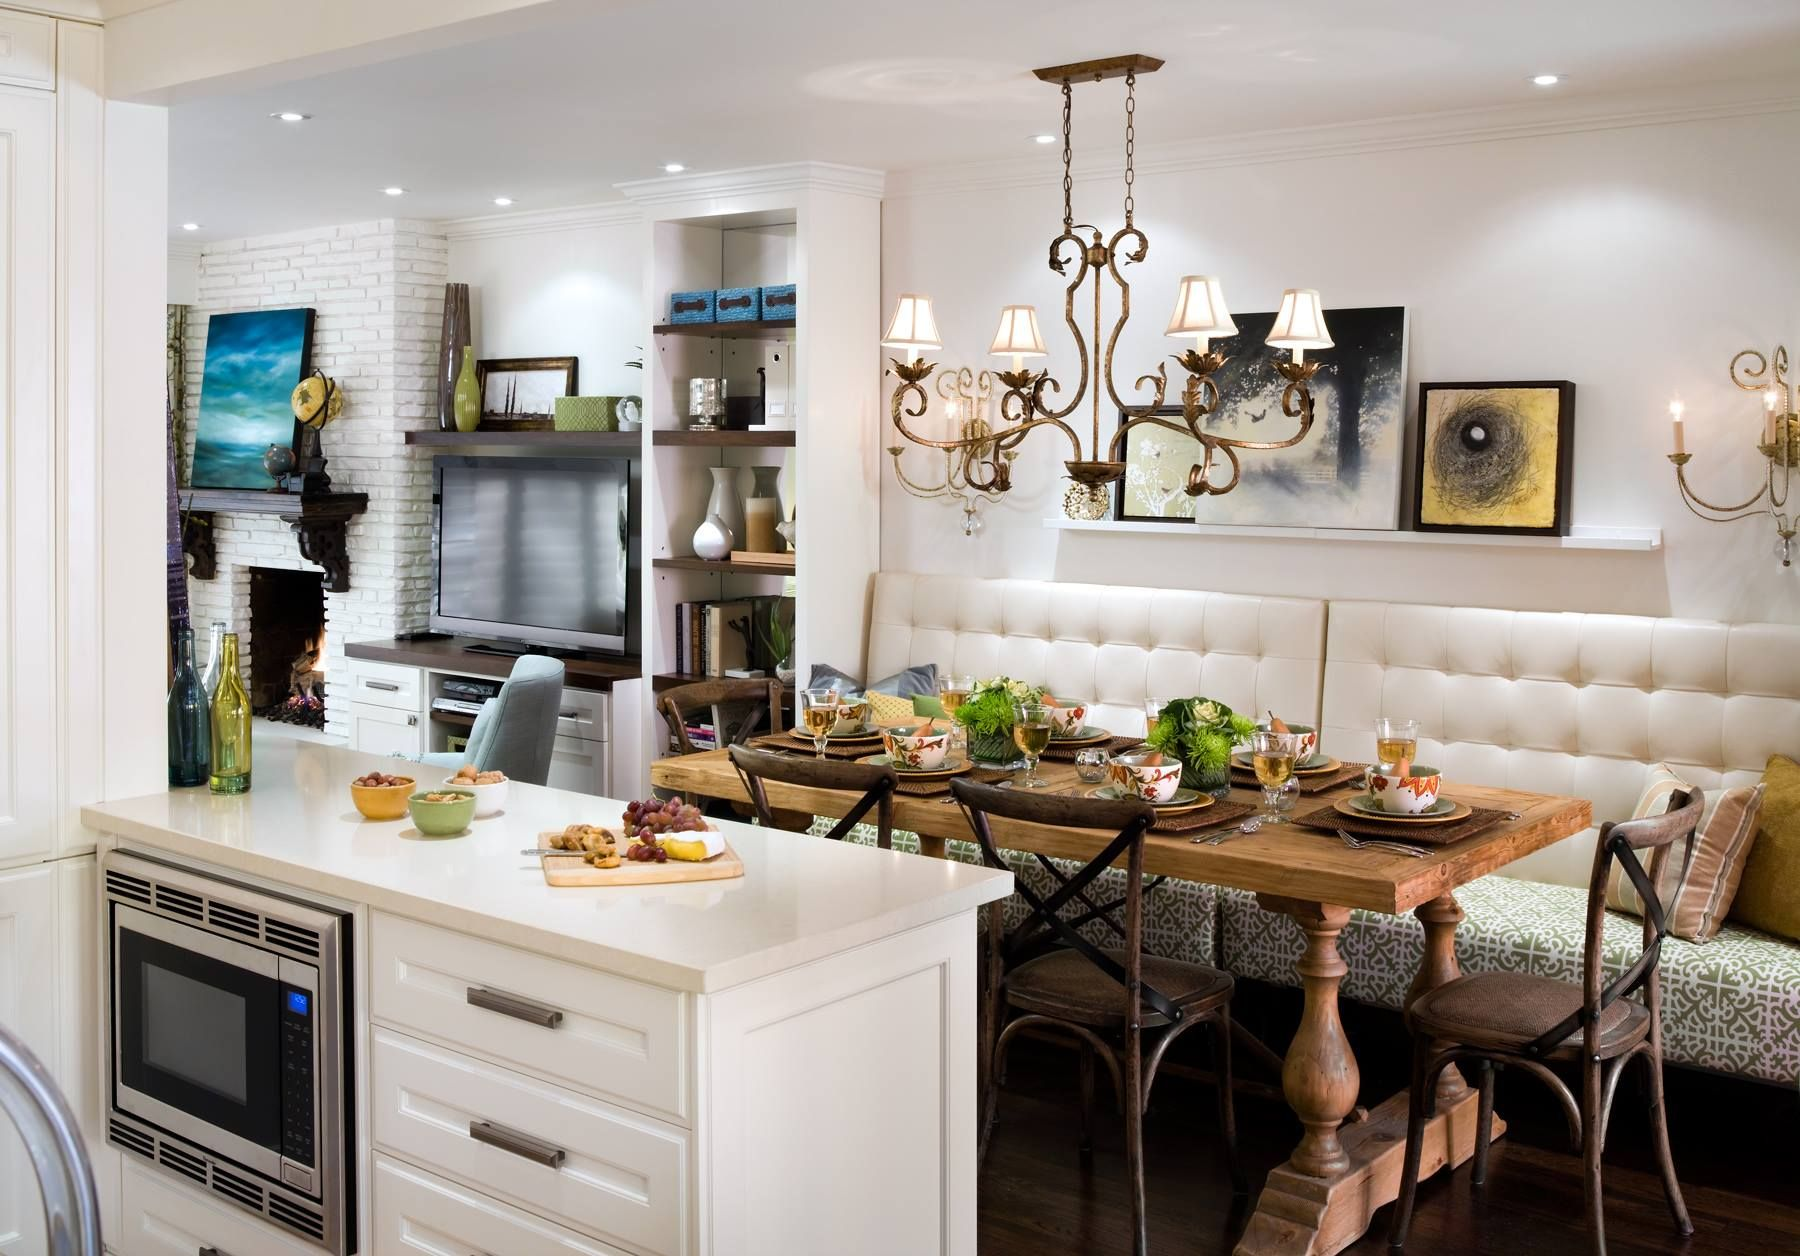 Bedroom And Kitchen Designs Candice Olson Kitchen 2  Dining  Pinterest  Candice Olson